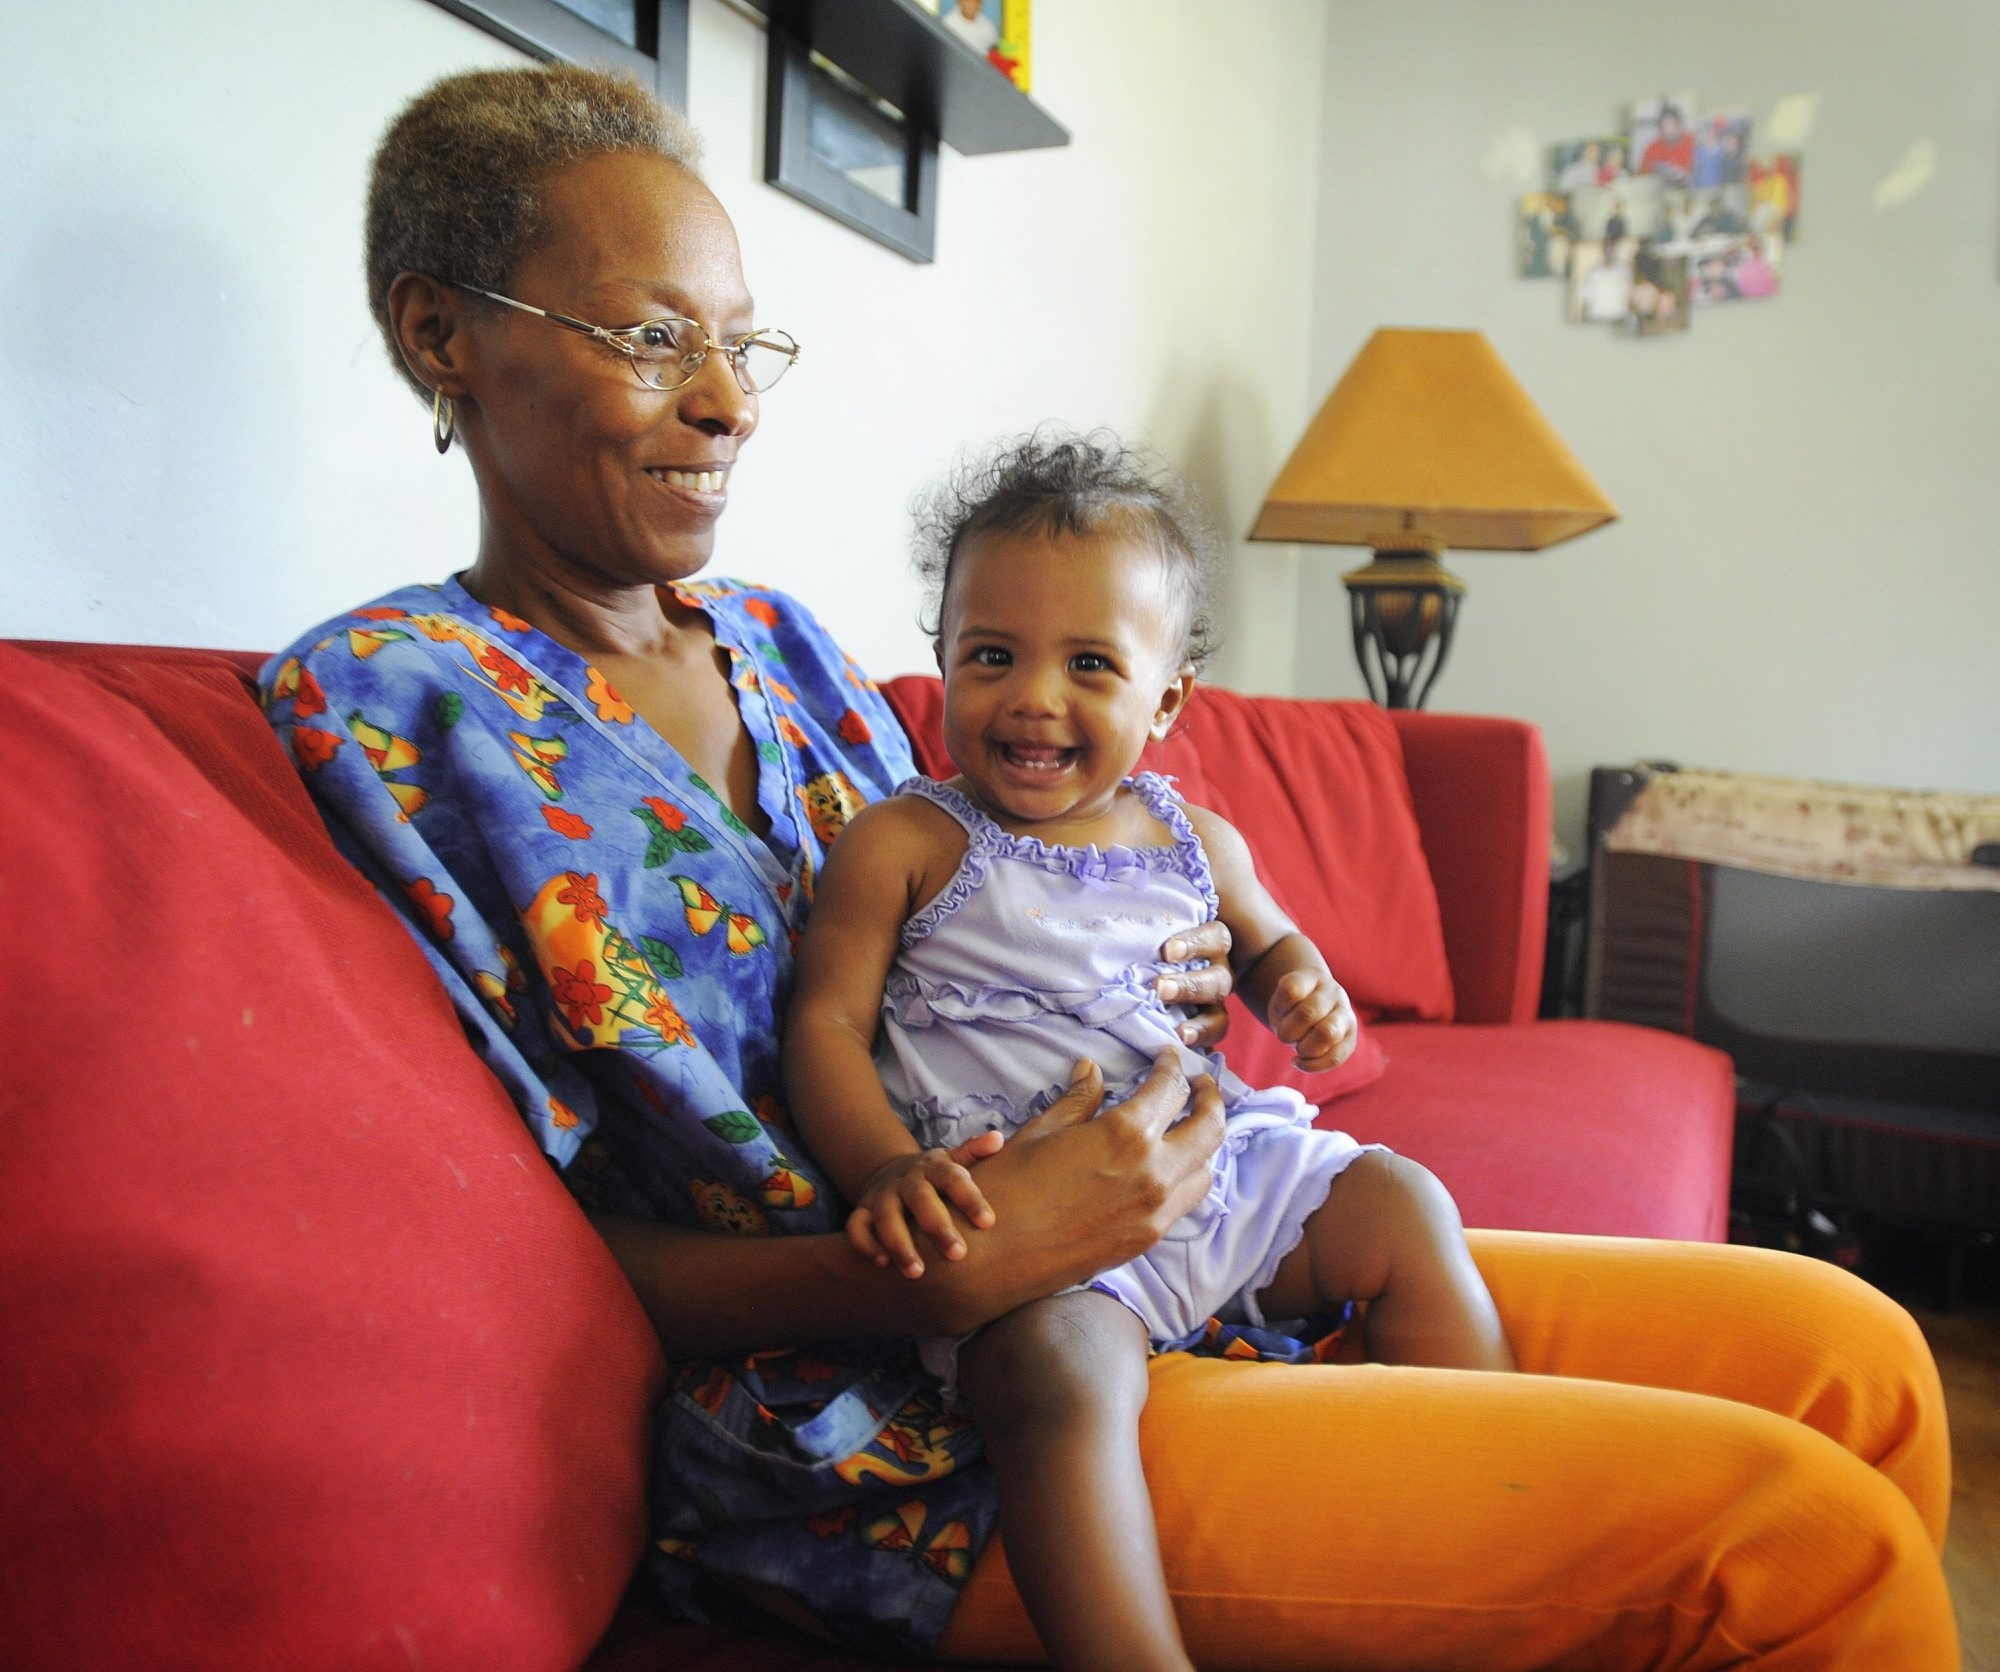 Madie Green, 55, is a self-employed family childcare provider who has no set retirement plan. She also is raising her two grandchildren and is worried about her ability to eventually retire. Here, she holds onto 8-month-old Logan Proctor, one of the children she cares for on weekdays, August 6, 2013, at her District Heights, Maryland home. (Erin Kirkland/Baltimore Sun/MCT)